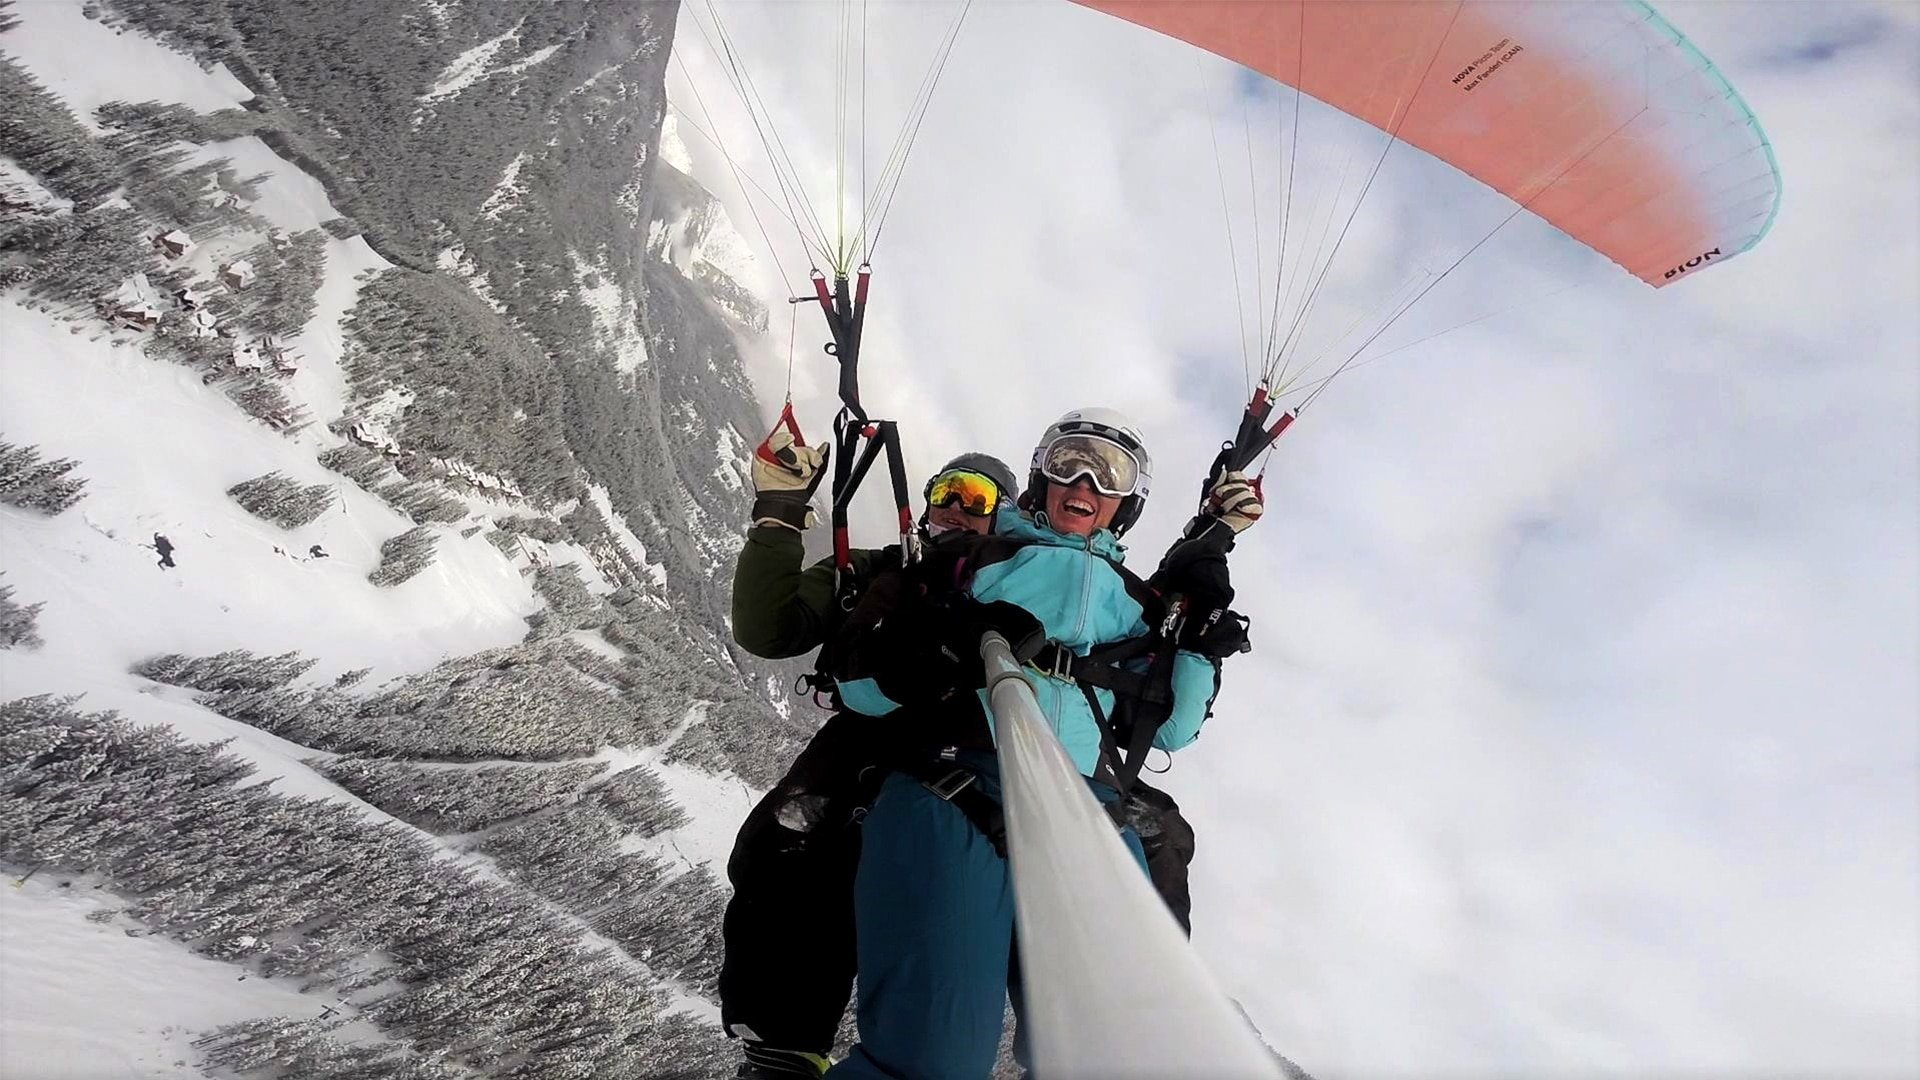 Panorama Paragliding 2017 | 8 Amazing Things to do in Winter Worth Traveling the World For